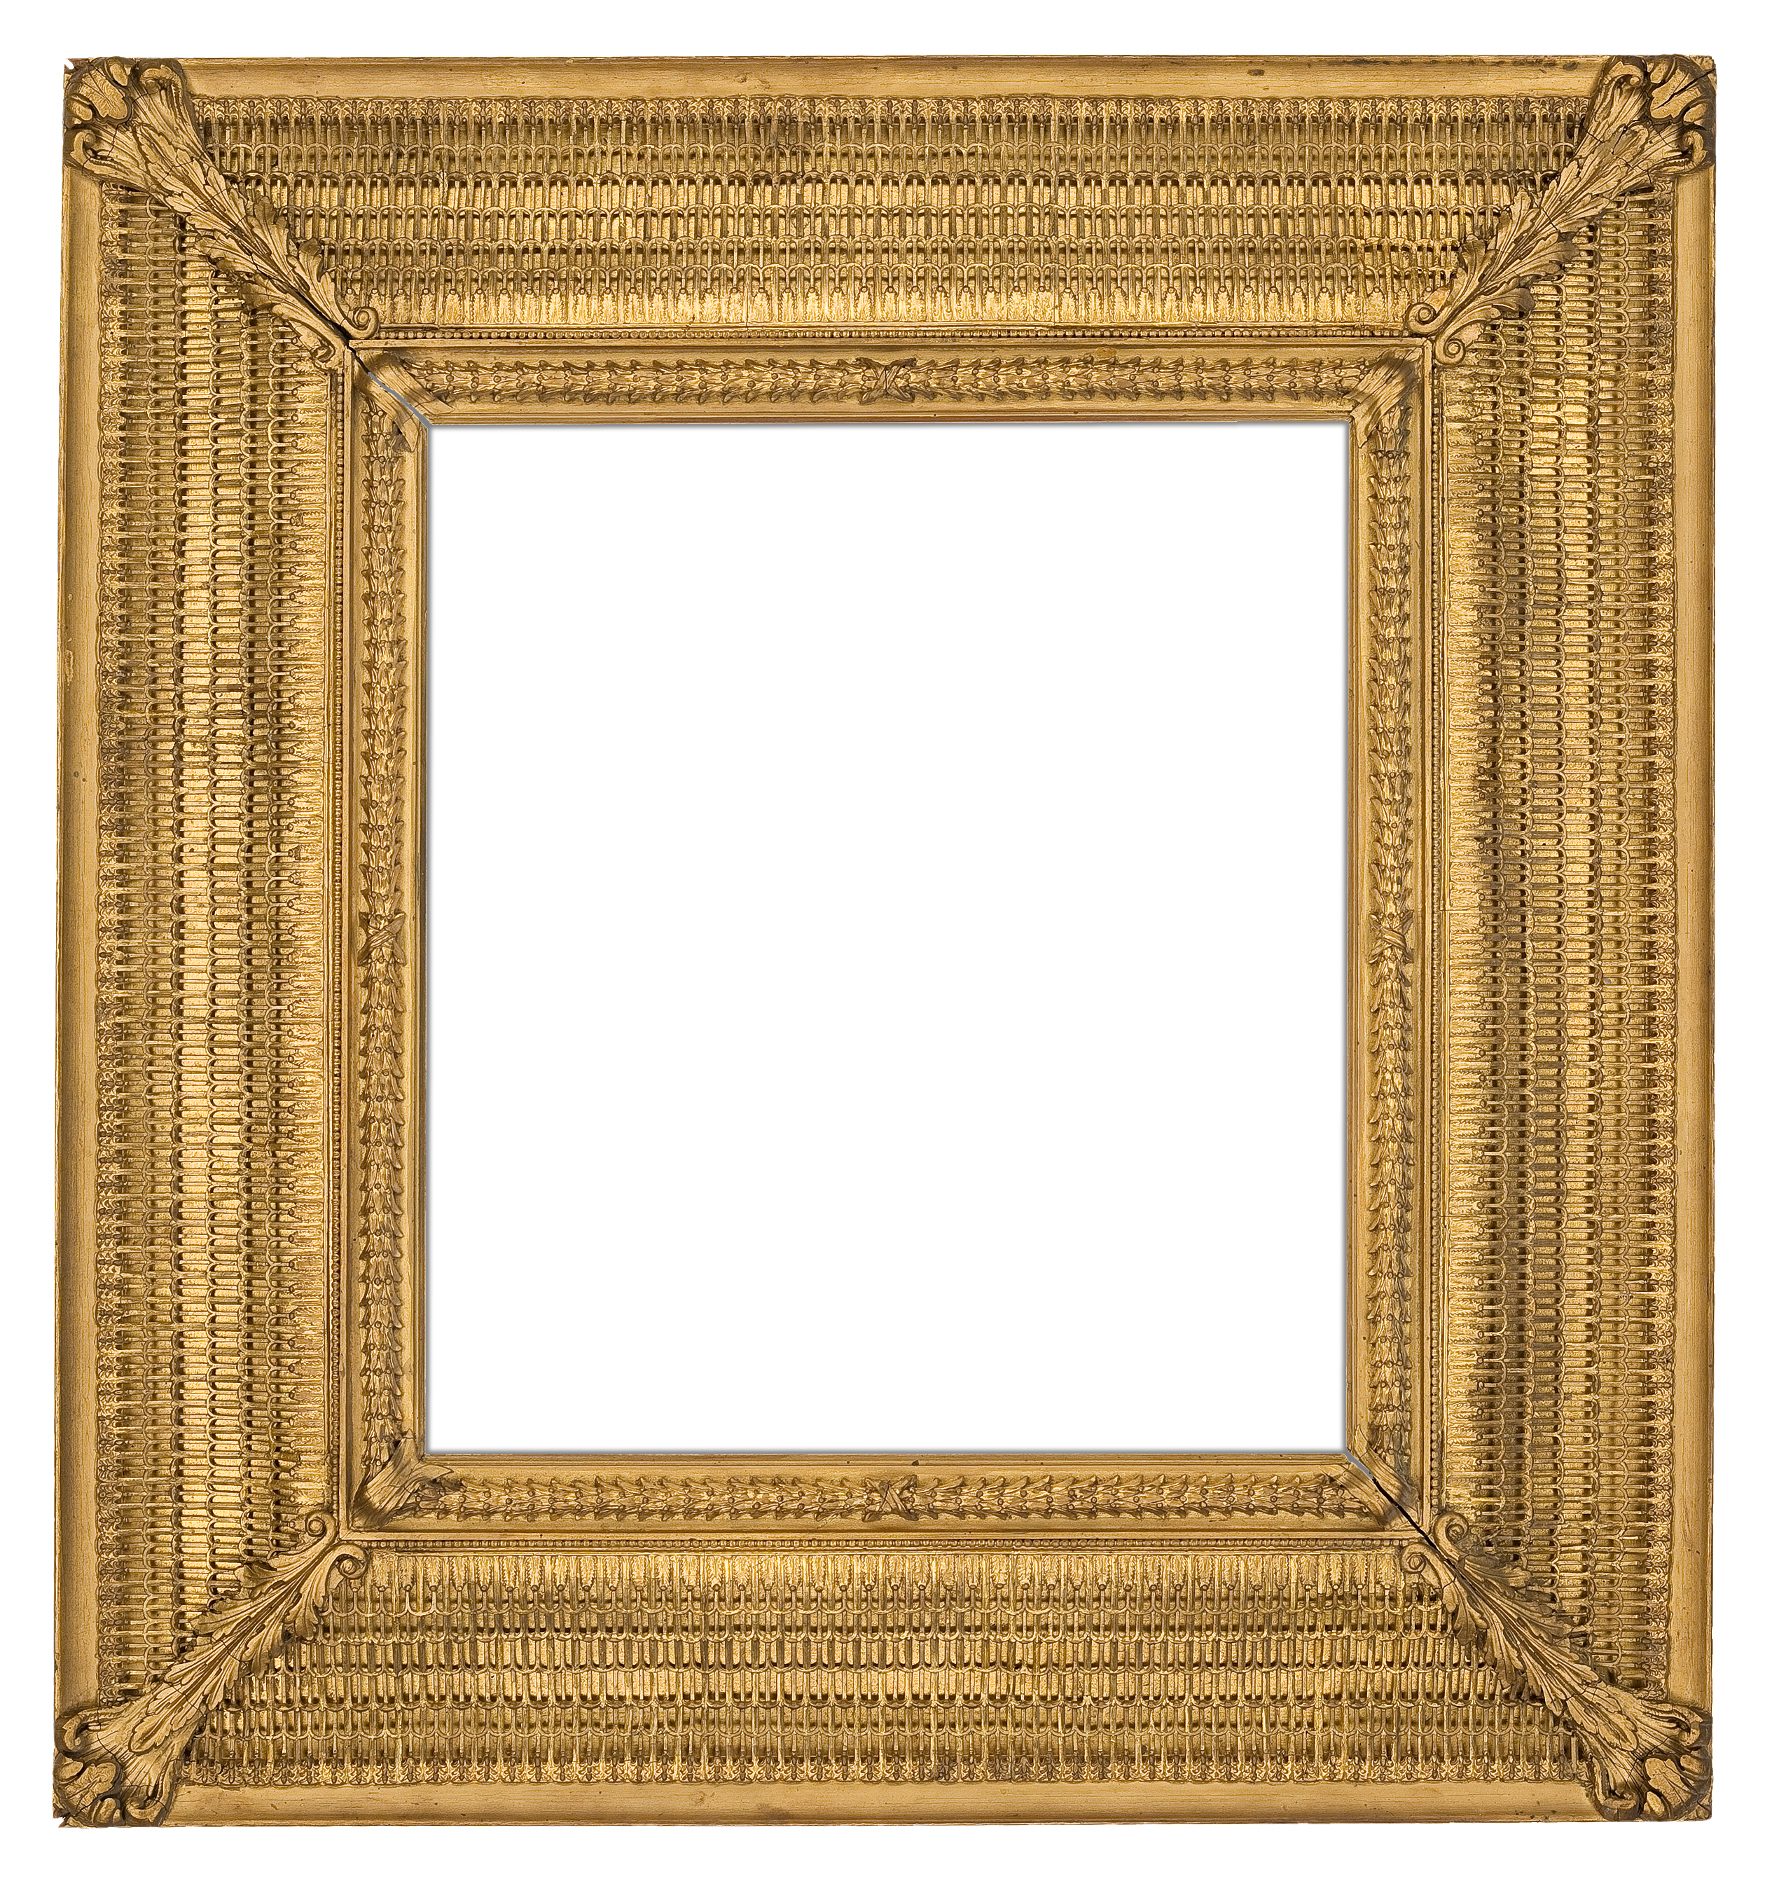 Frame of the Week – A rare grille frame by Stanford White